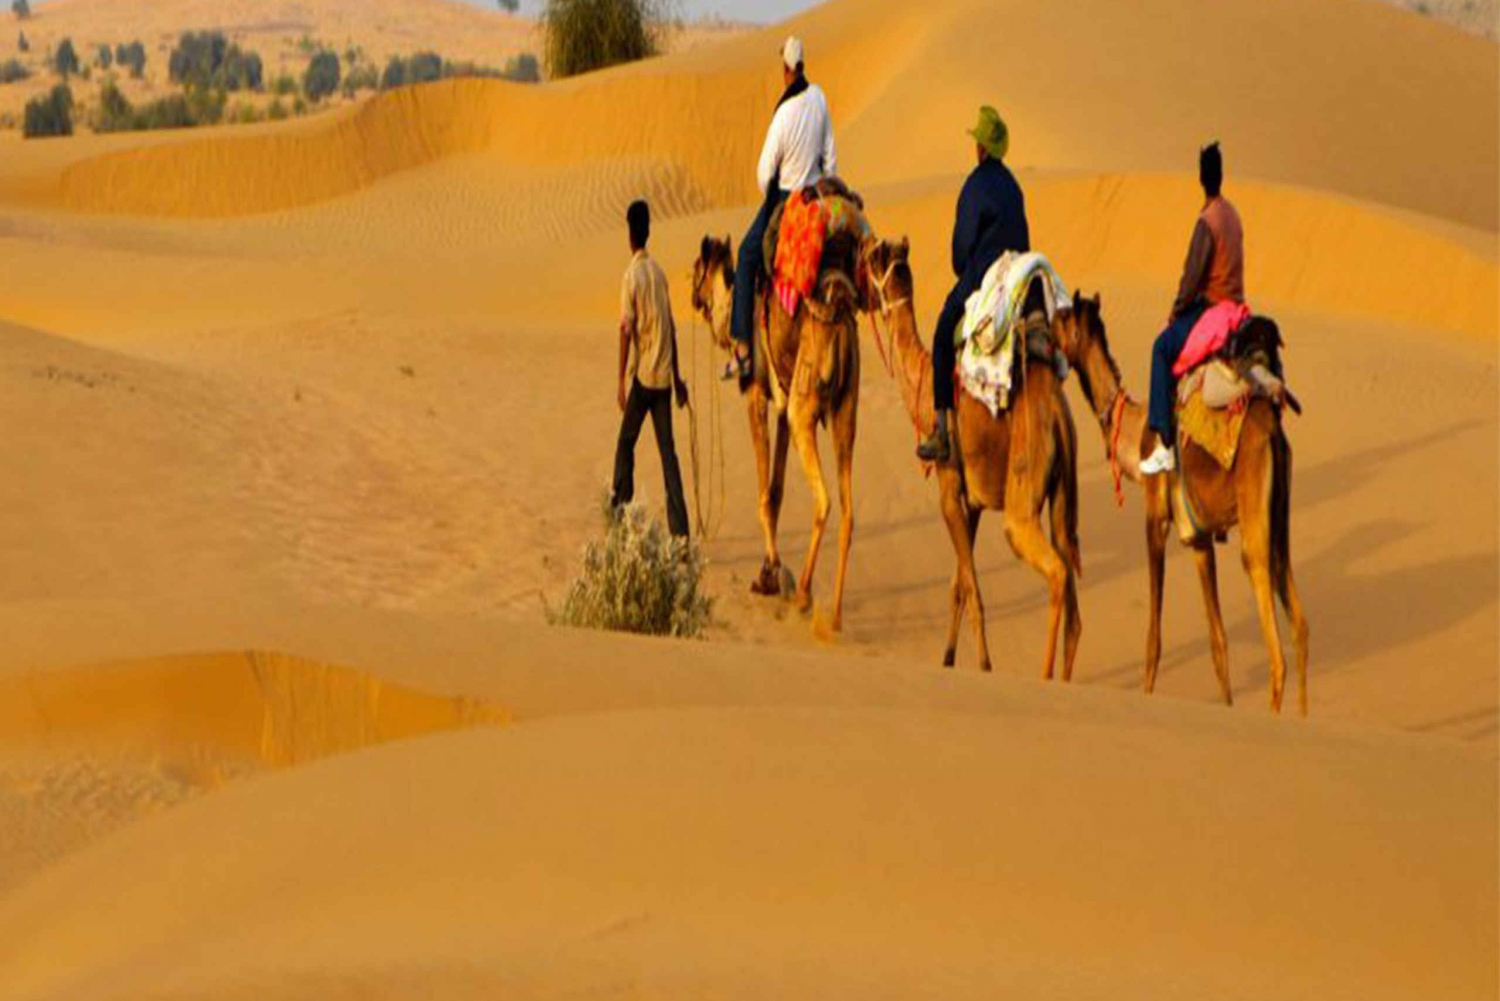 Jaisalmer Private City Tour with Camel Safari in Desert